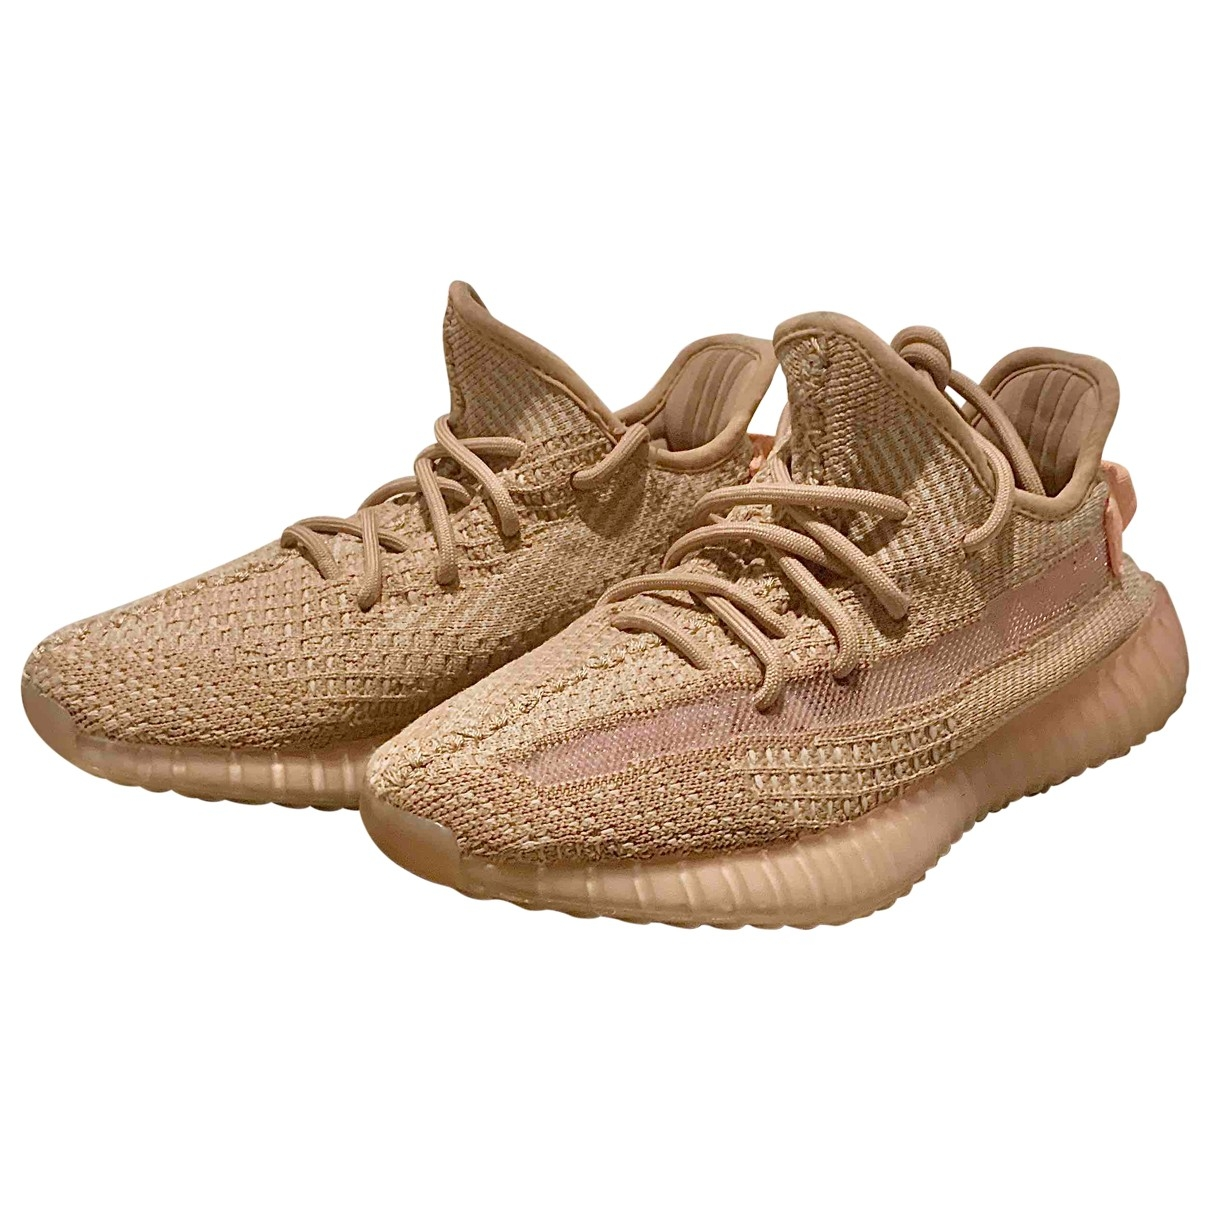 Yeezy X Adidas - Baskets Boost 350 V2 pour homme en toile